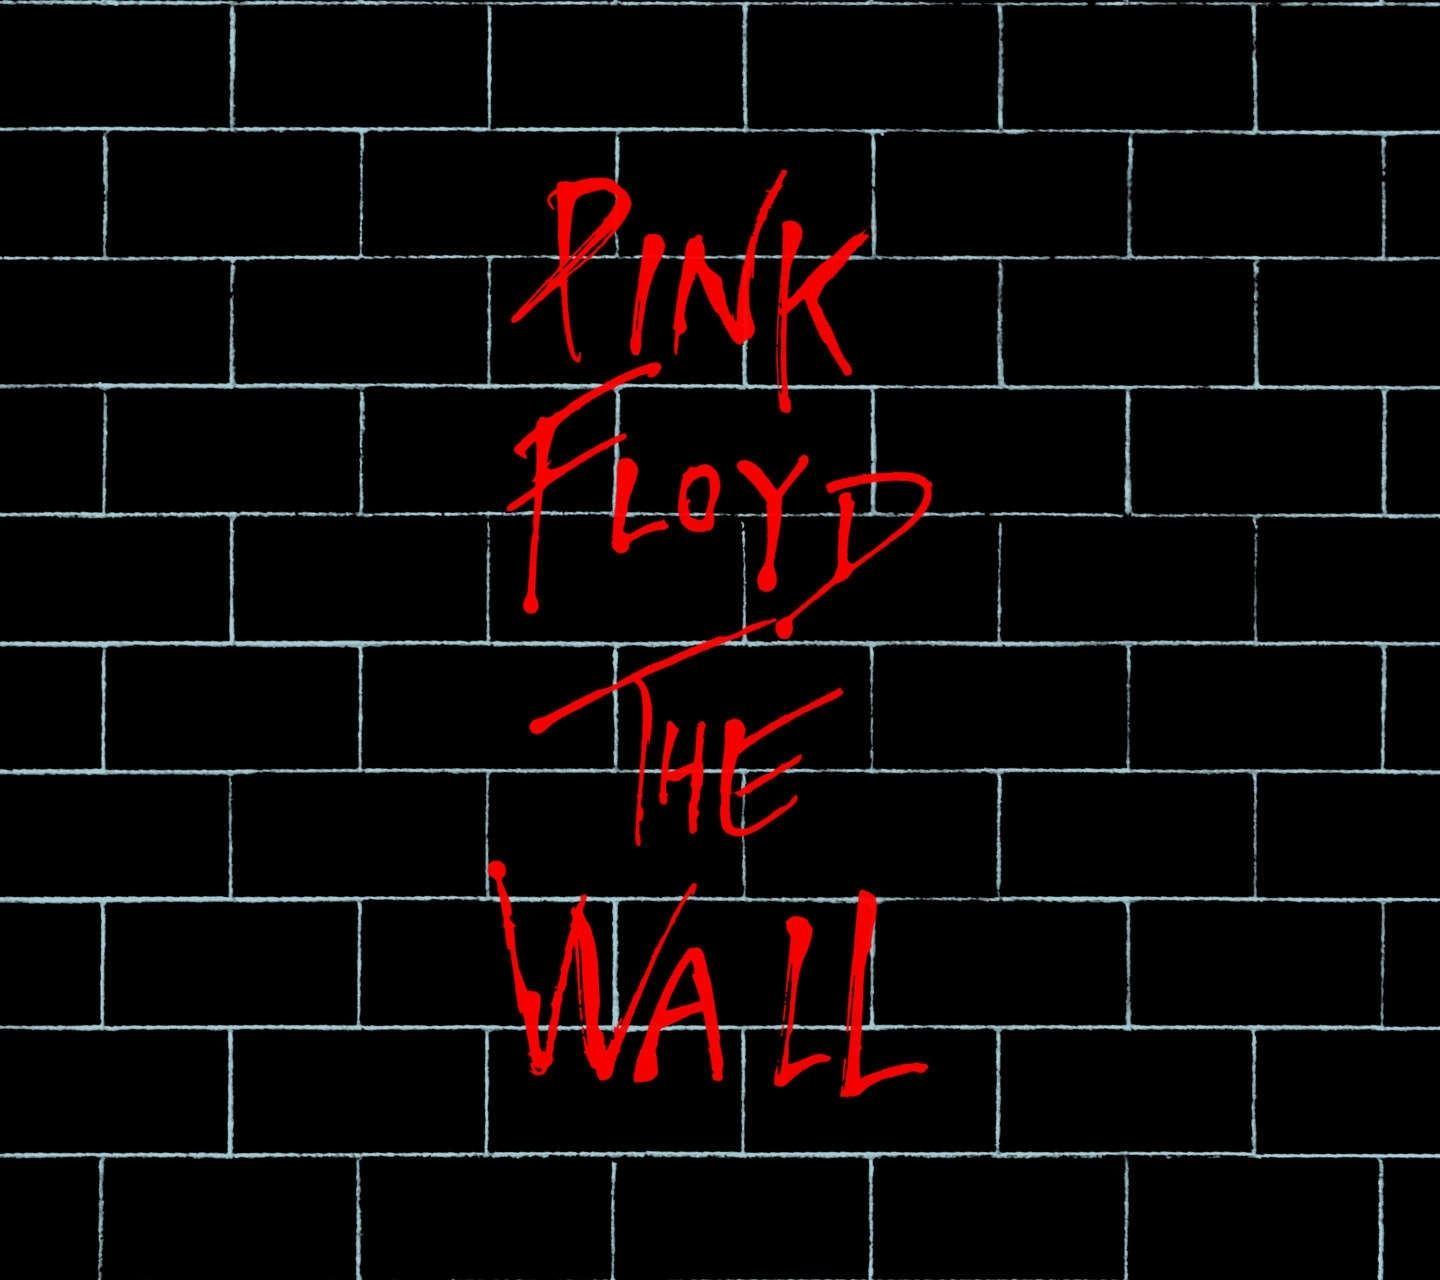 21+ pink floyd wallpapers, music backgrounds, images, pictures